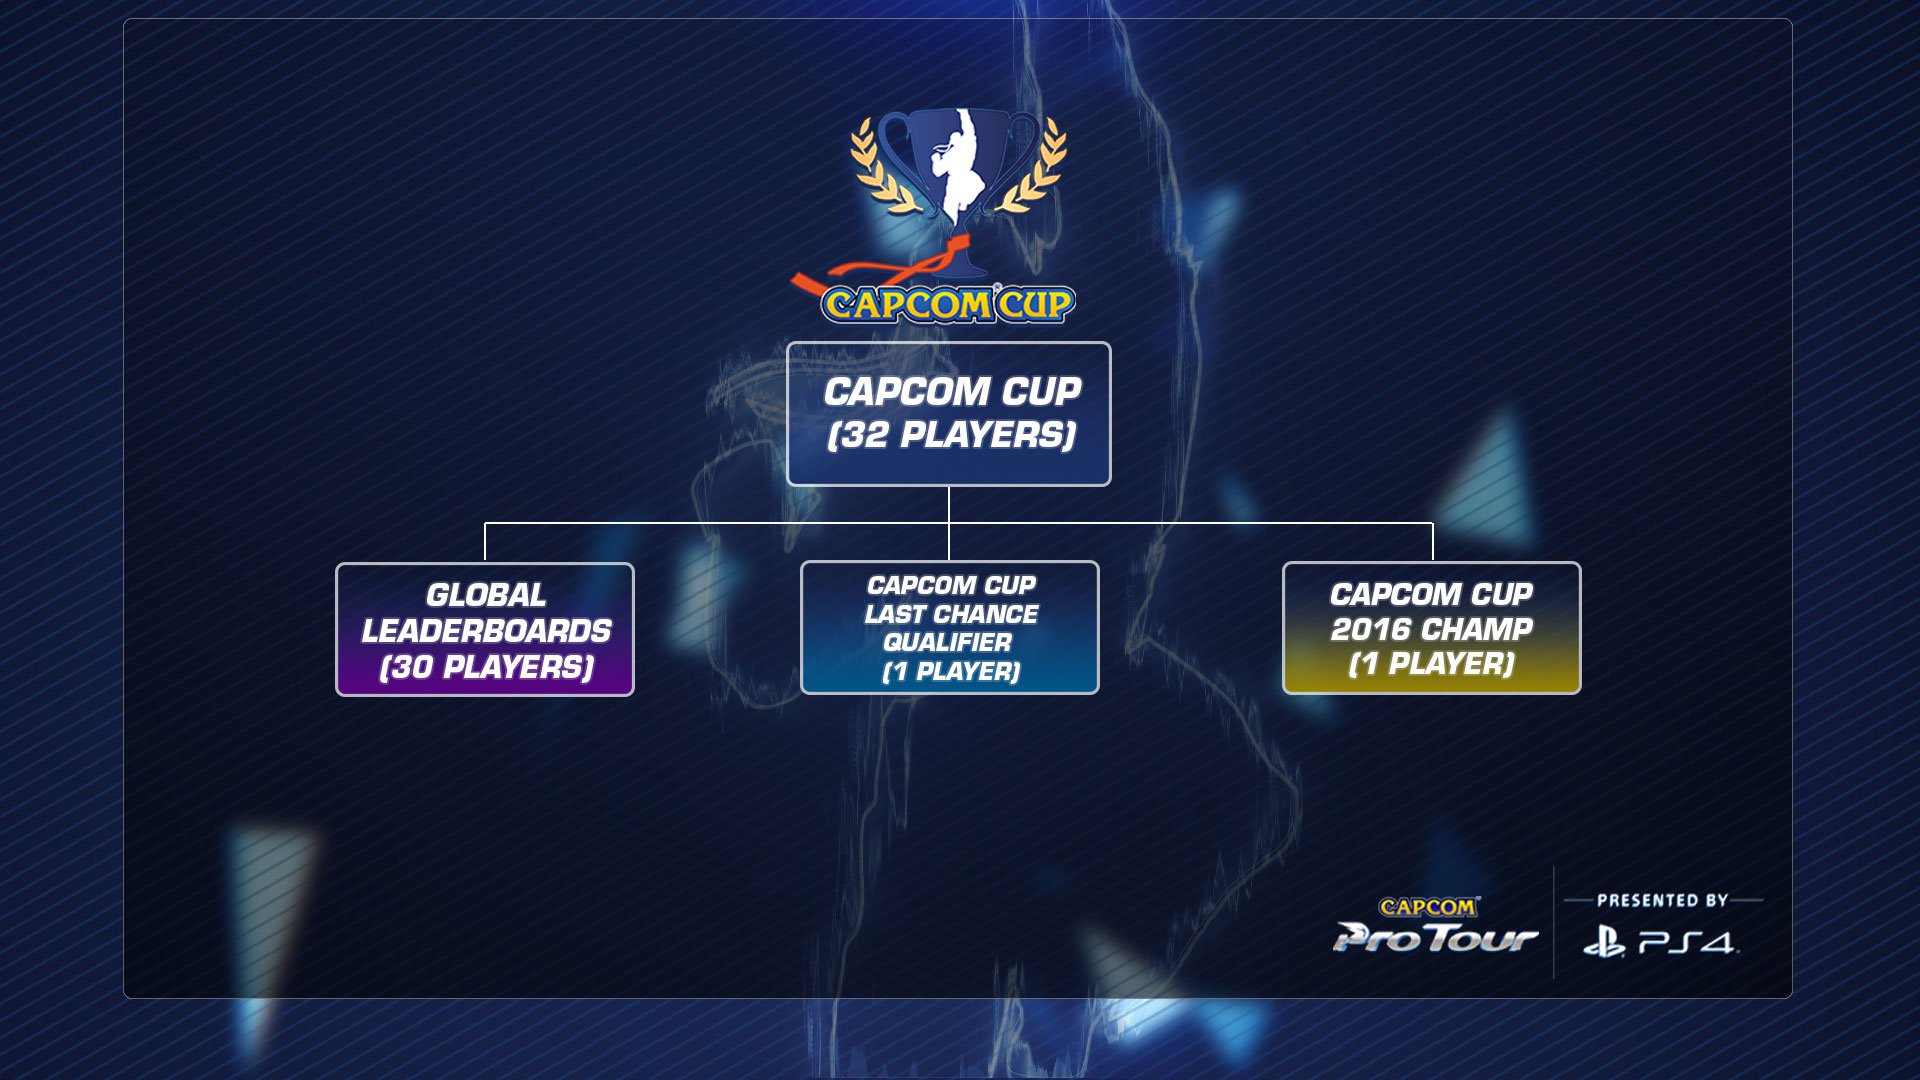 Capcom Pro Tour 2017 Details - Qualification Tree